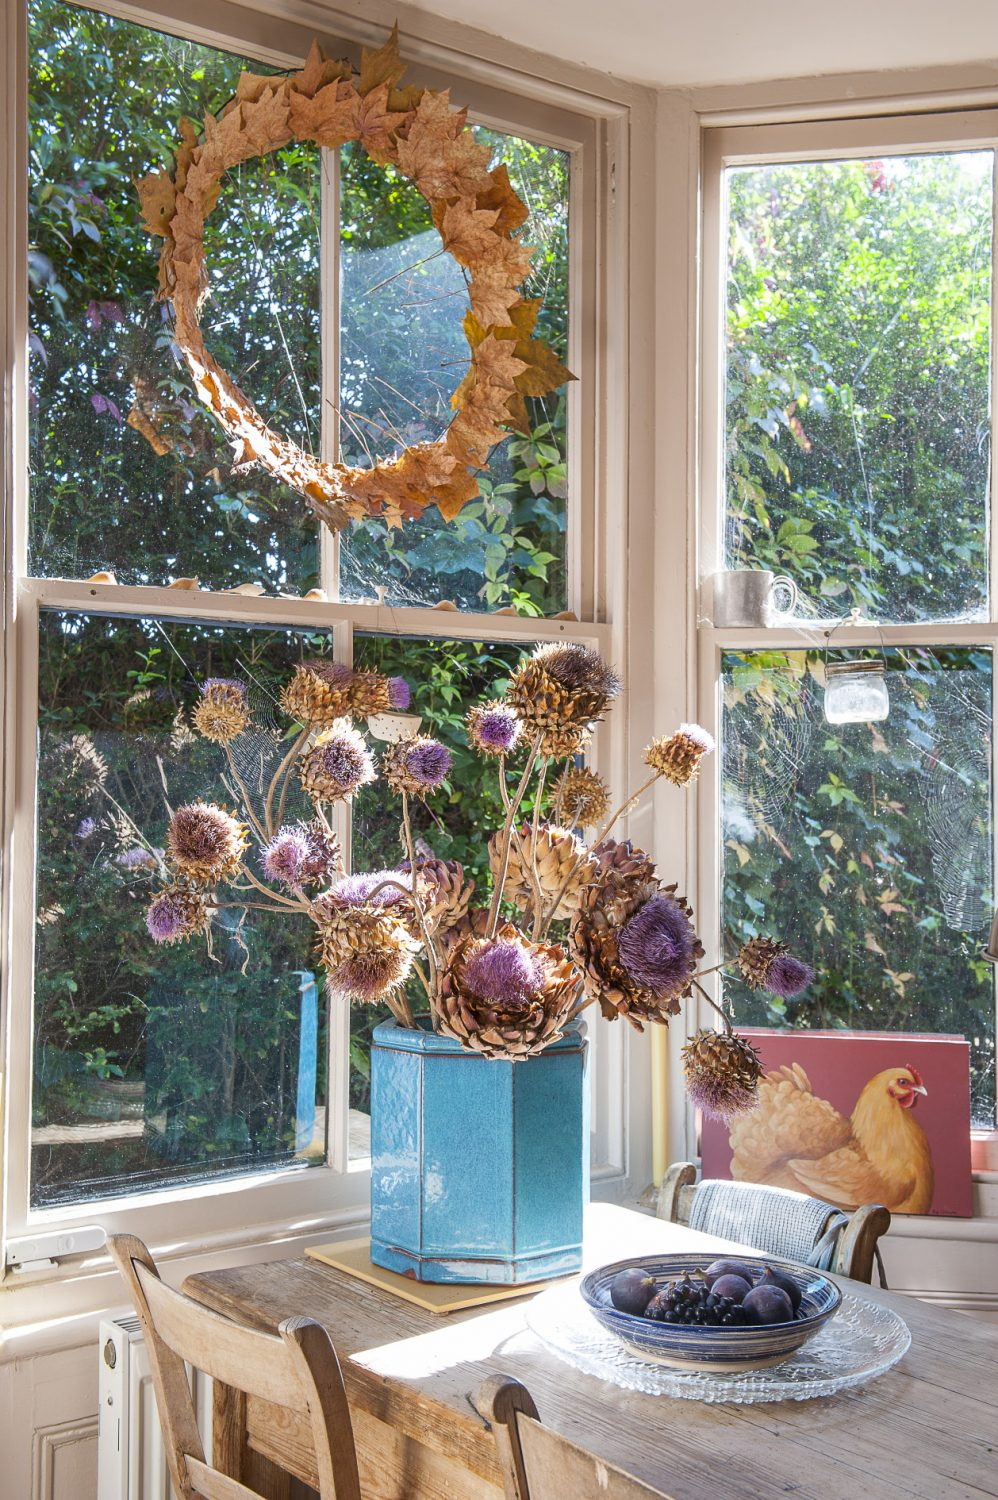 A vase that belonged to Francine's grandmother is the perfect container for cardoon and artichoke heads. Overhead is a wreath made from leaves that were pressed between newspaper placed under a doormat